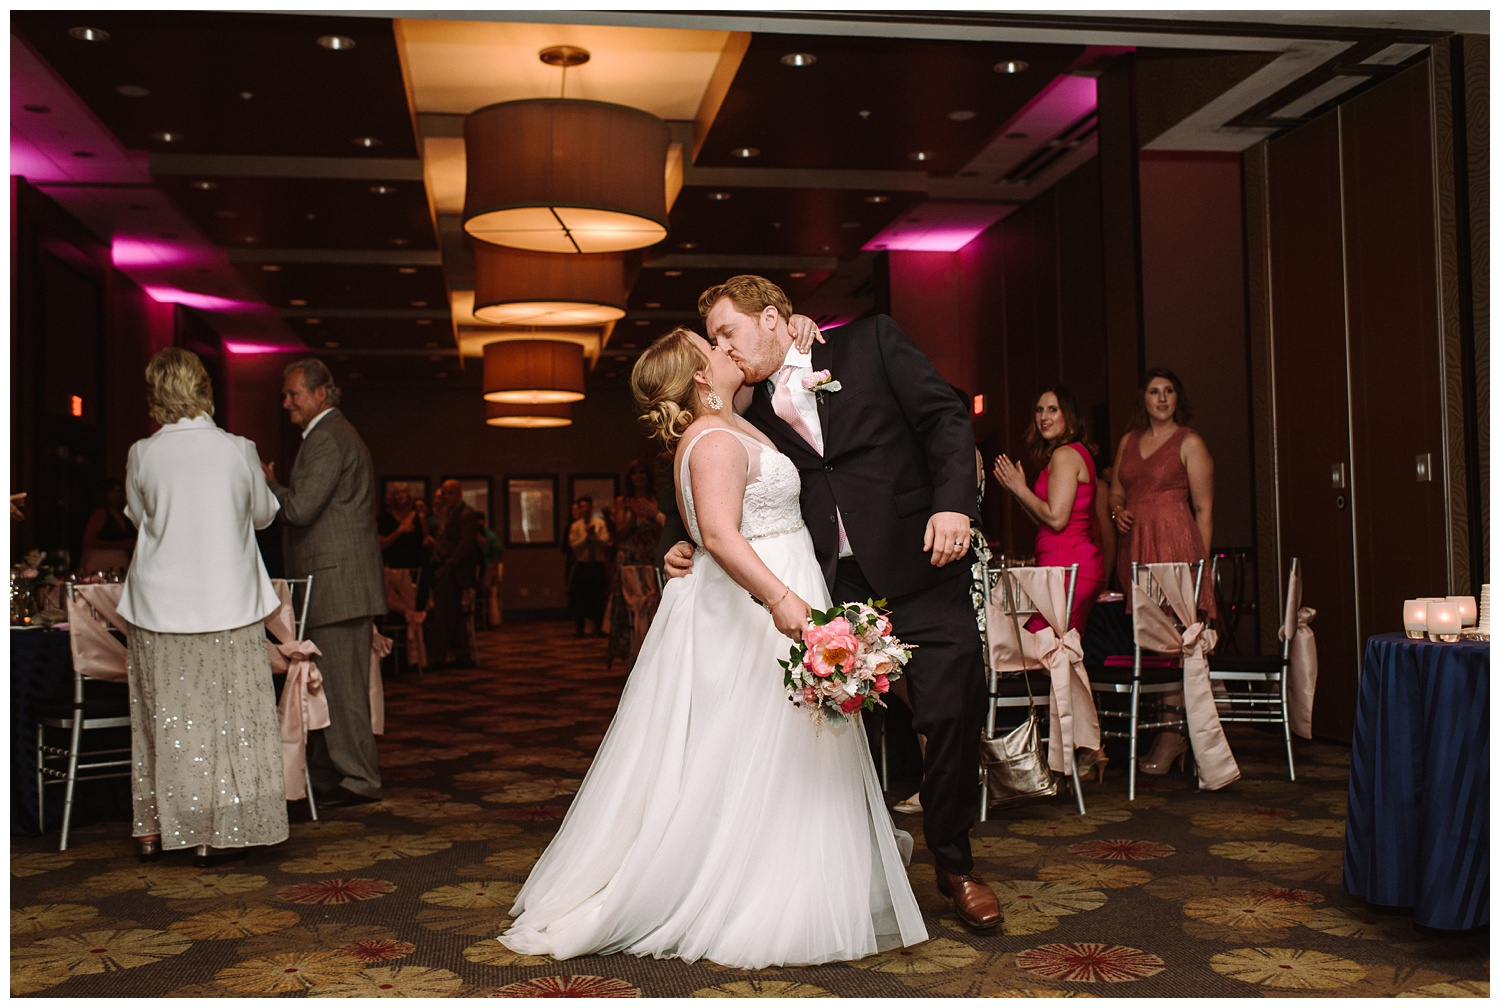 Renaissance Hotel Gillette Stadium Wedding Photographer90.jpg